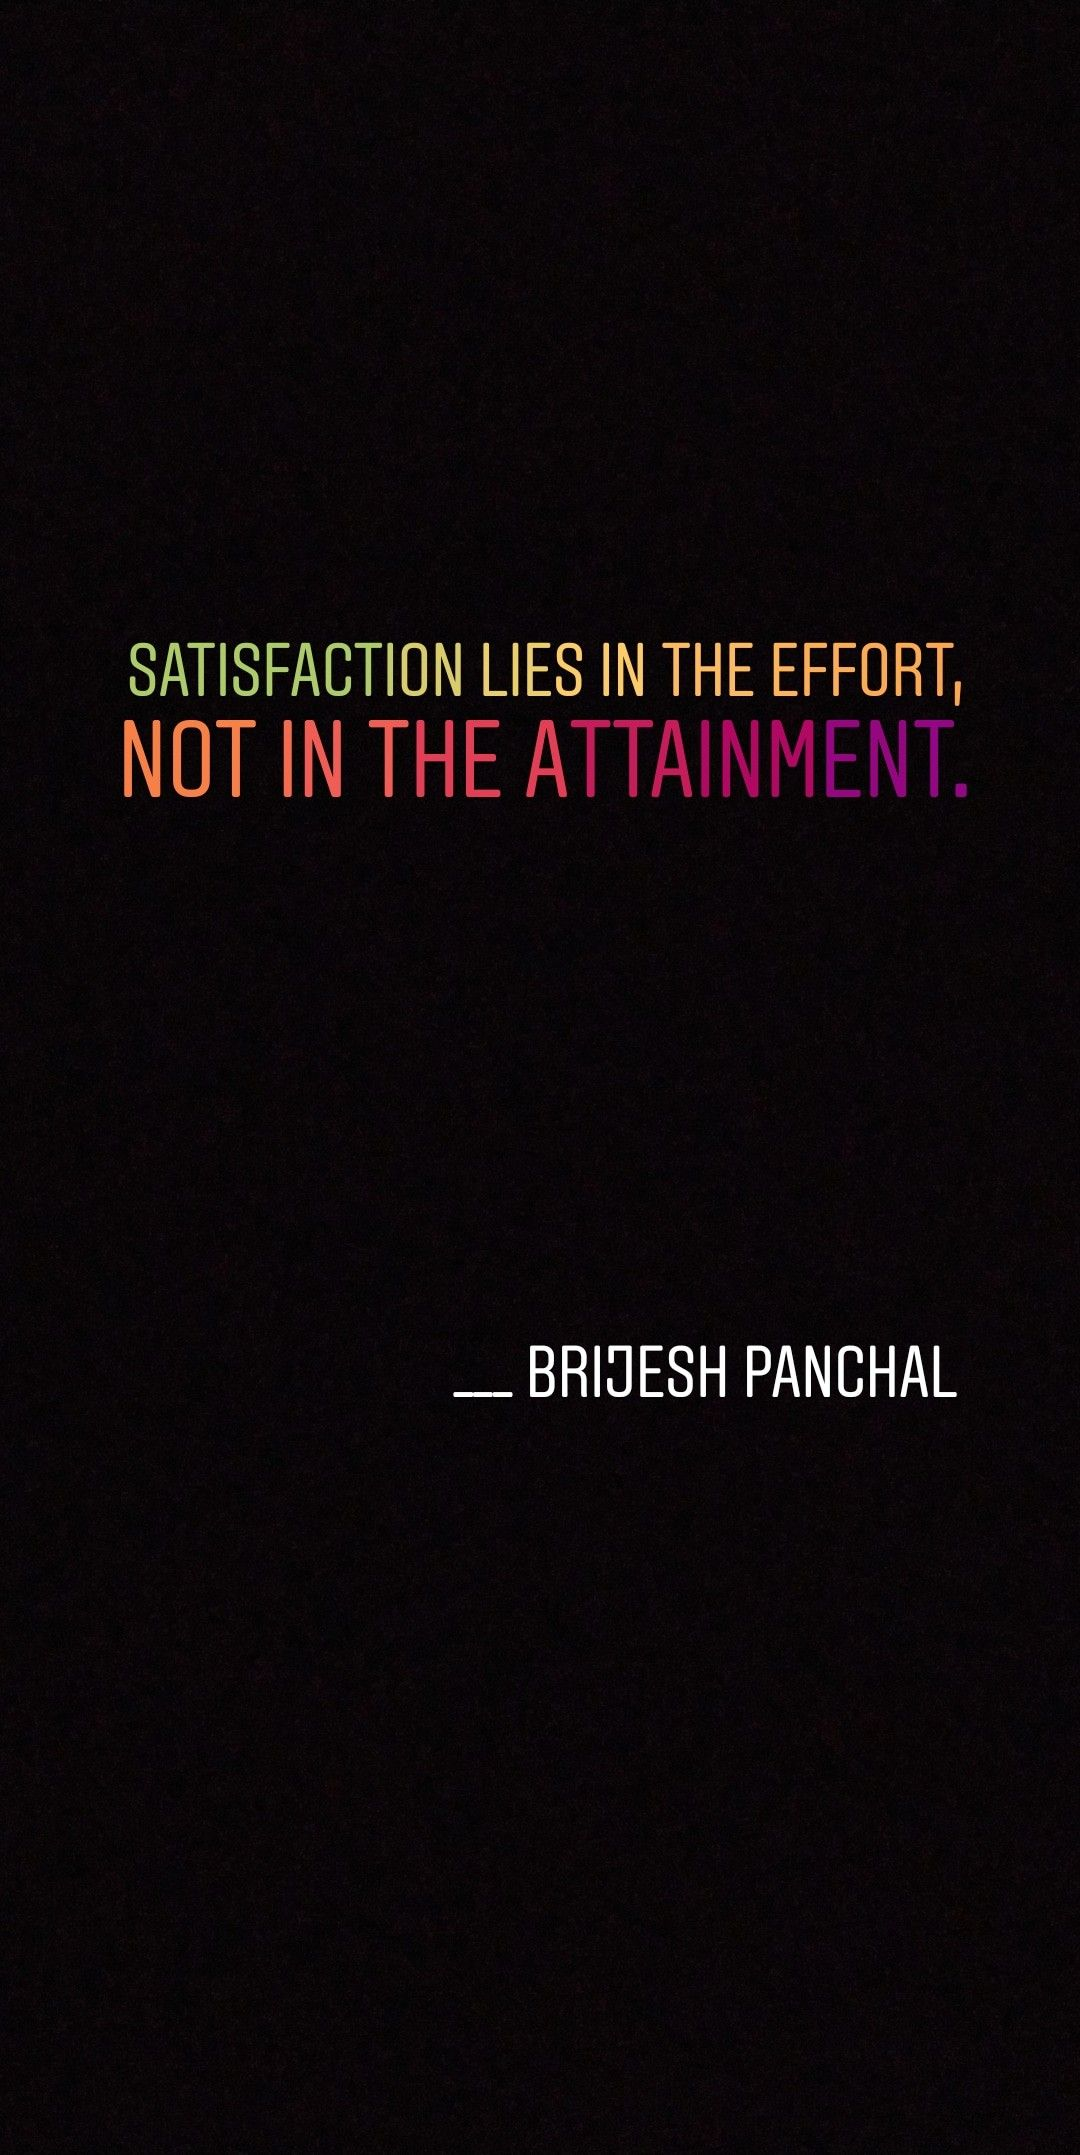 Not In The Attainment